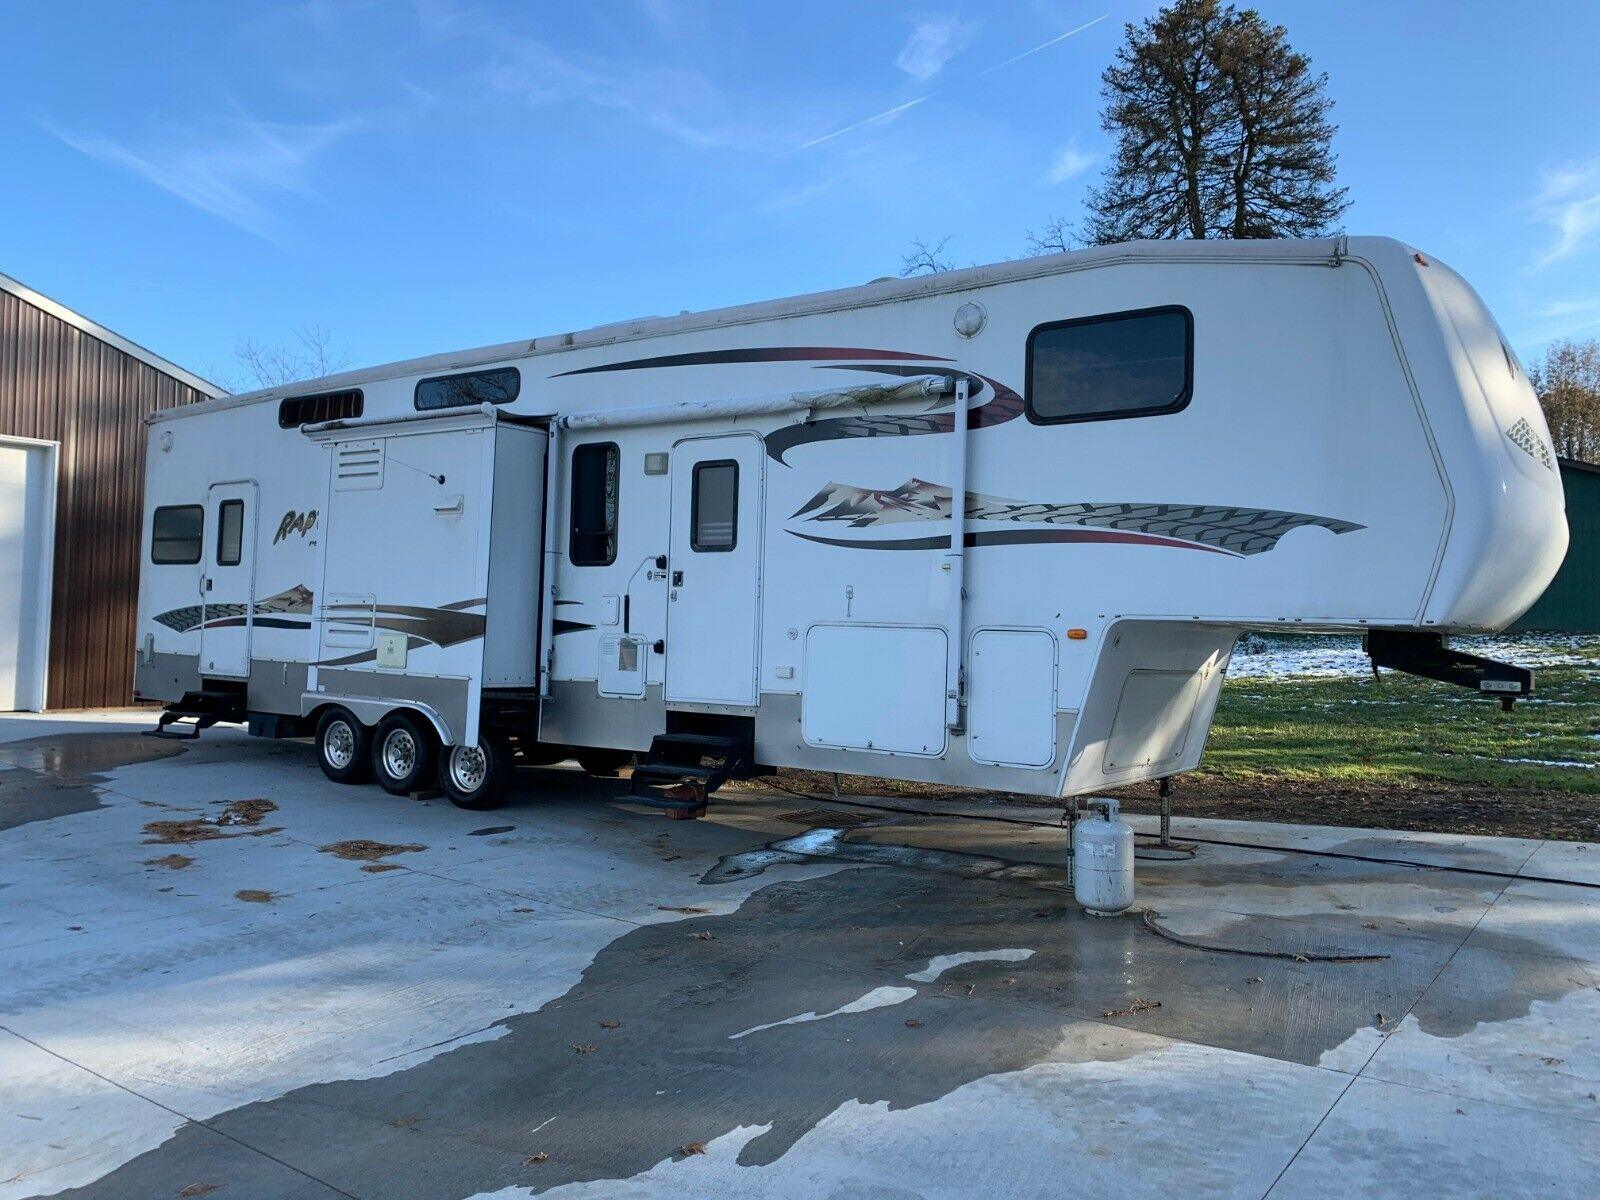 toy hauler 2006 Keystone Raptor camper for sale